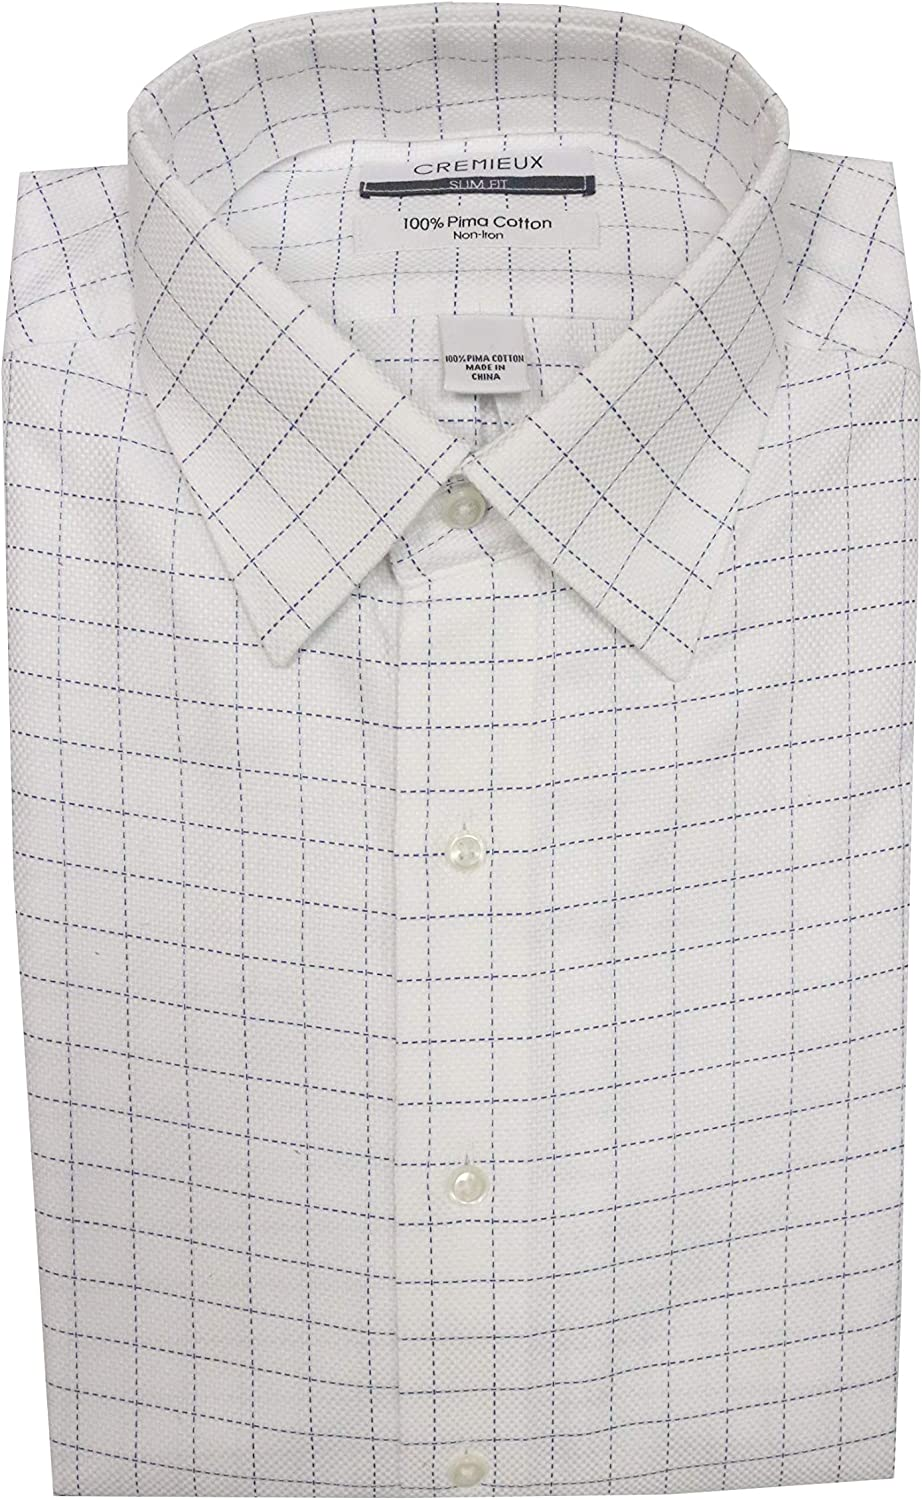 Cremieux Non Iron Slim Fit Spread Collar Checked Dress Shirt S95DH120 White/Navy